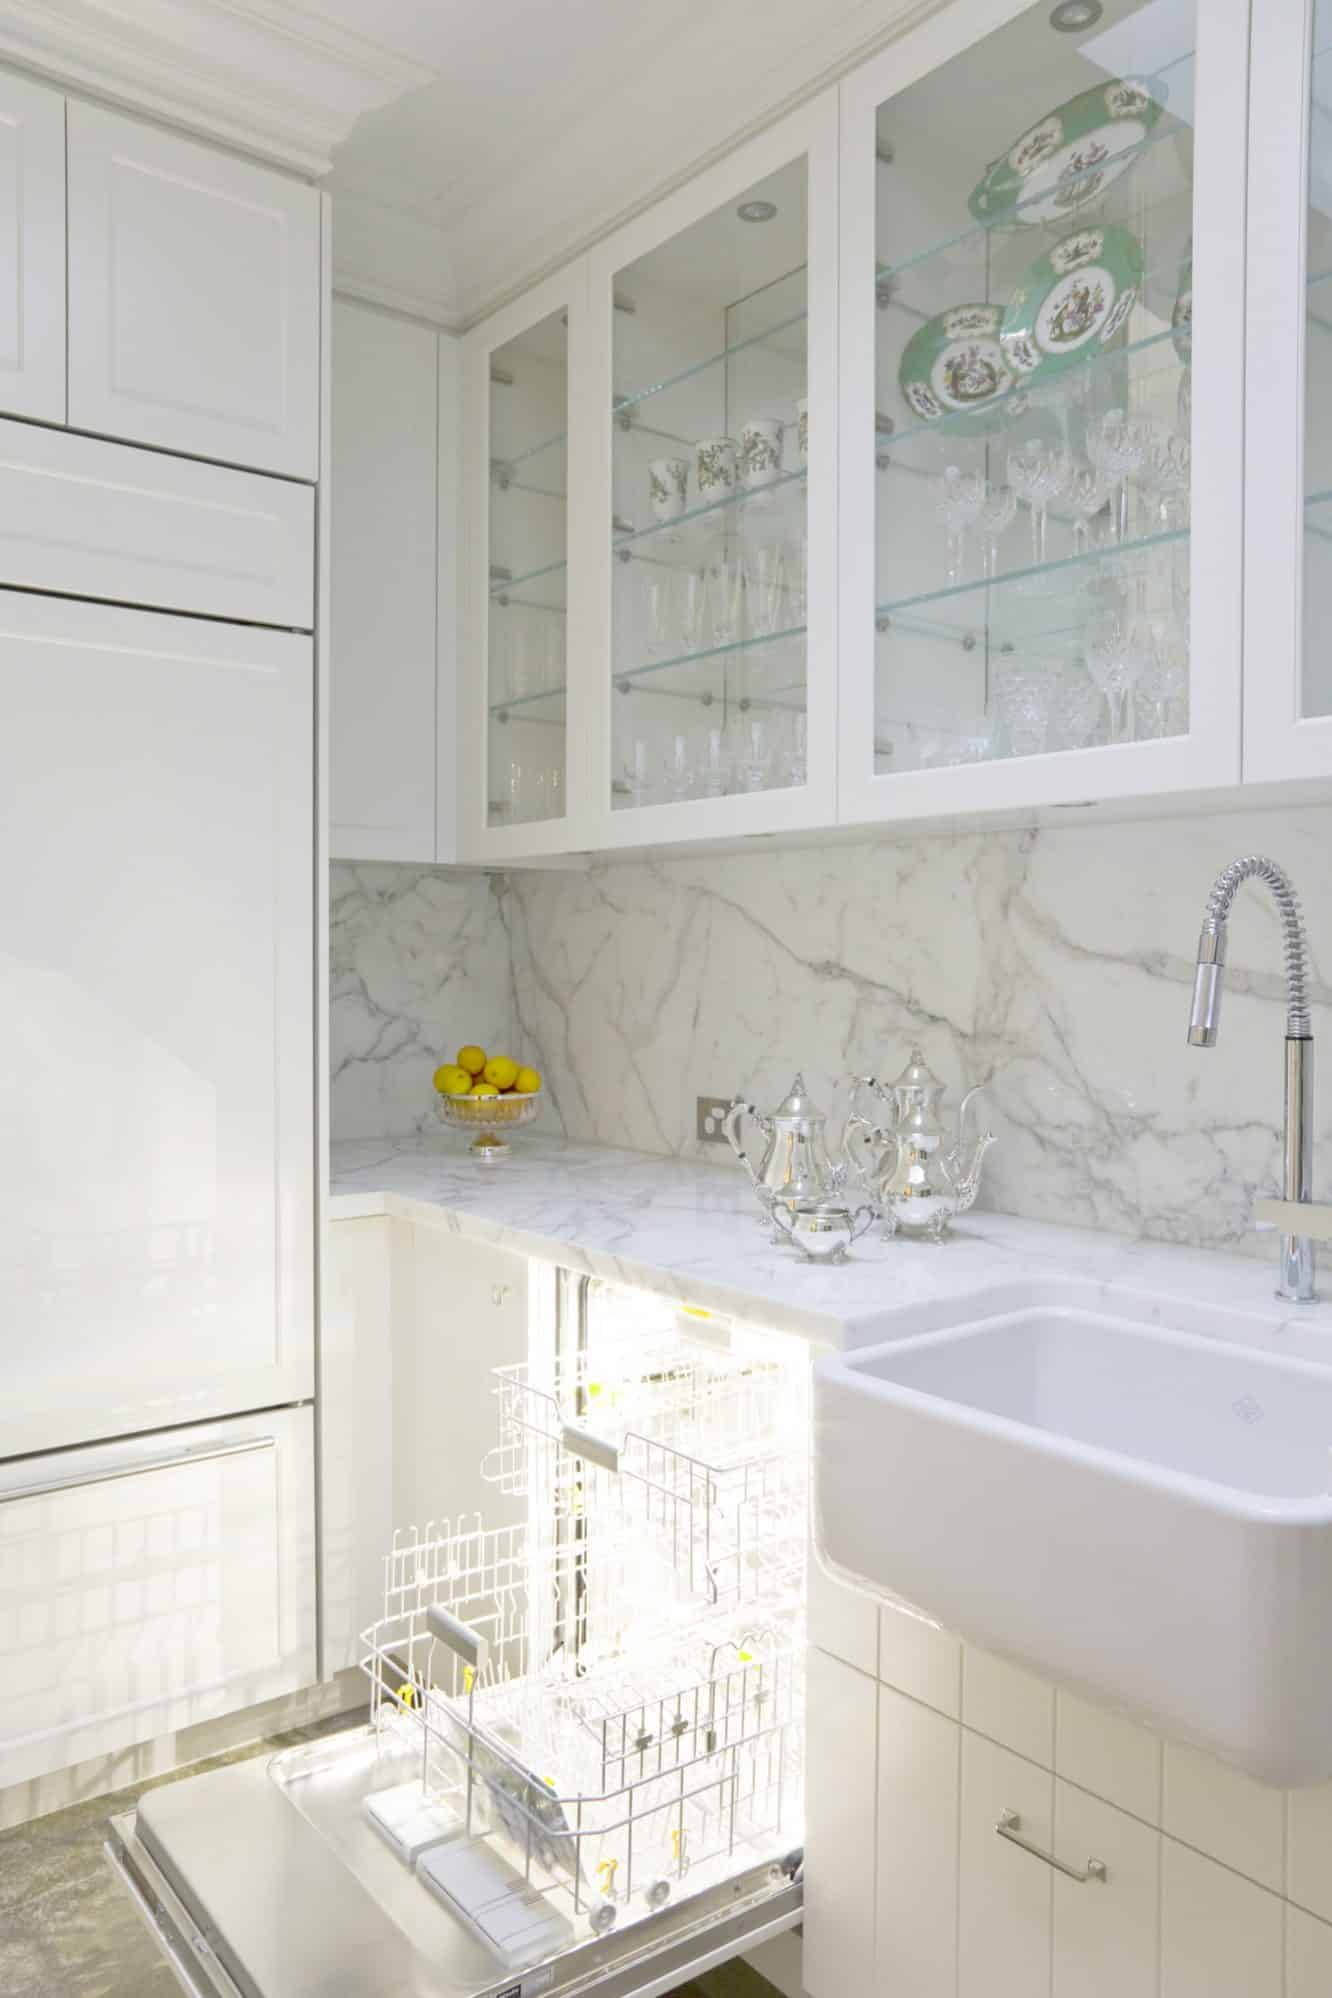 Luxurious scullery with integrated dishwasher behind a v groove door